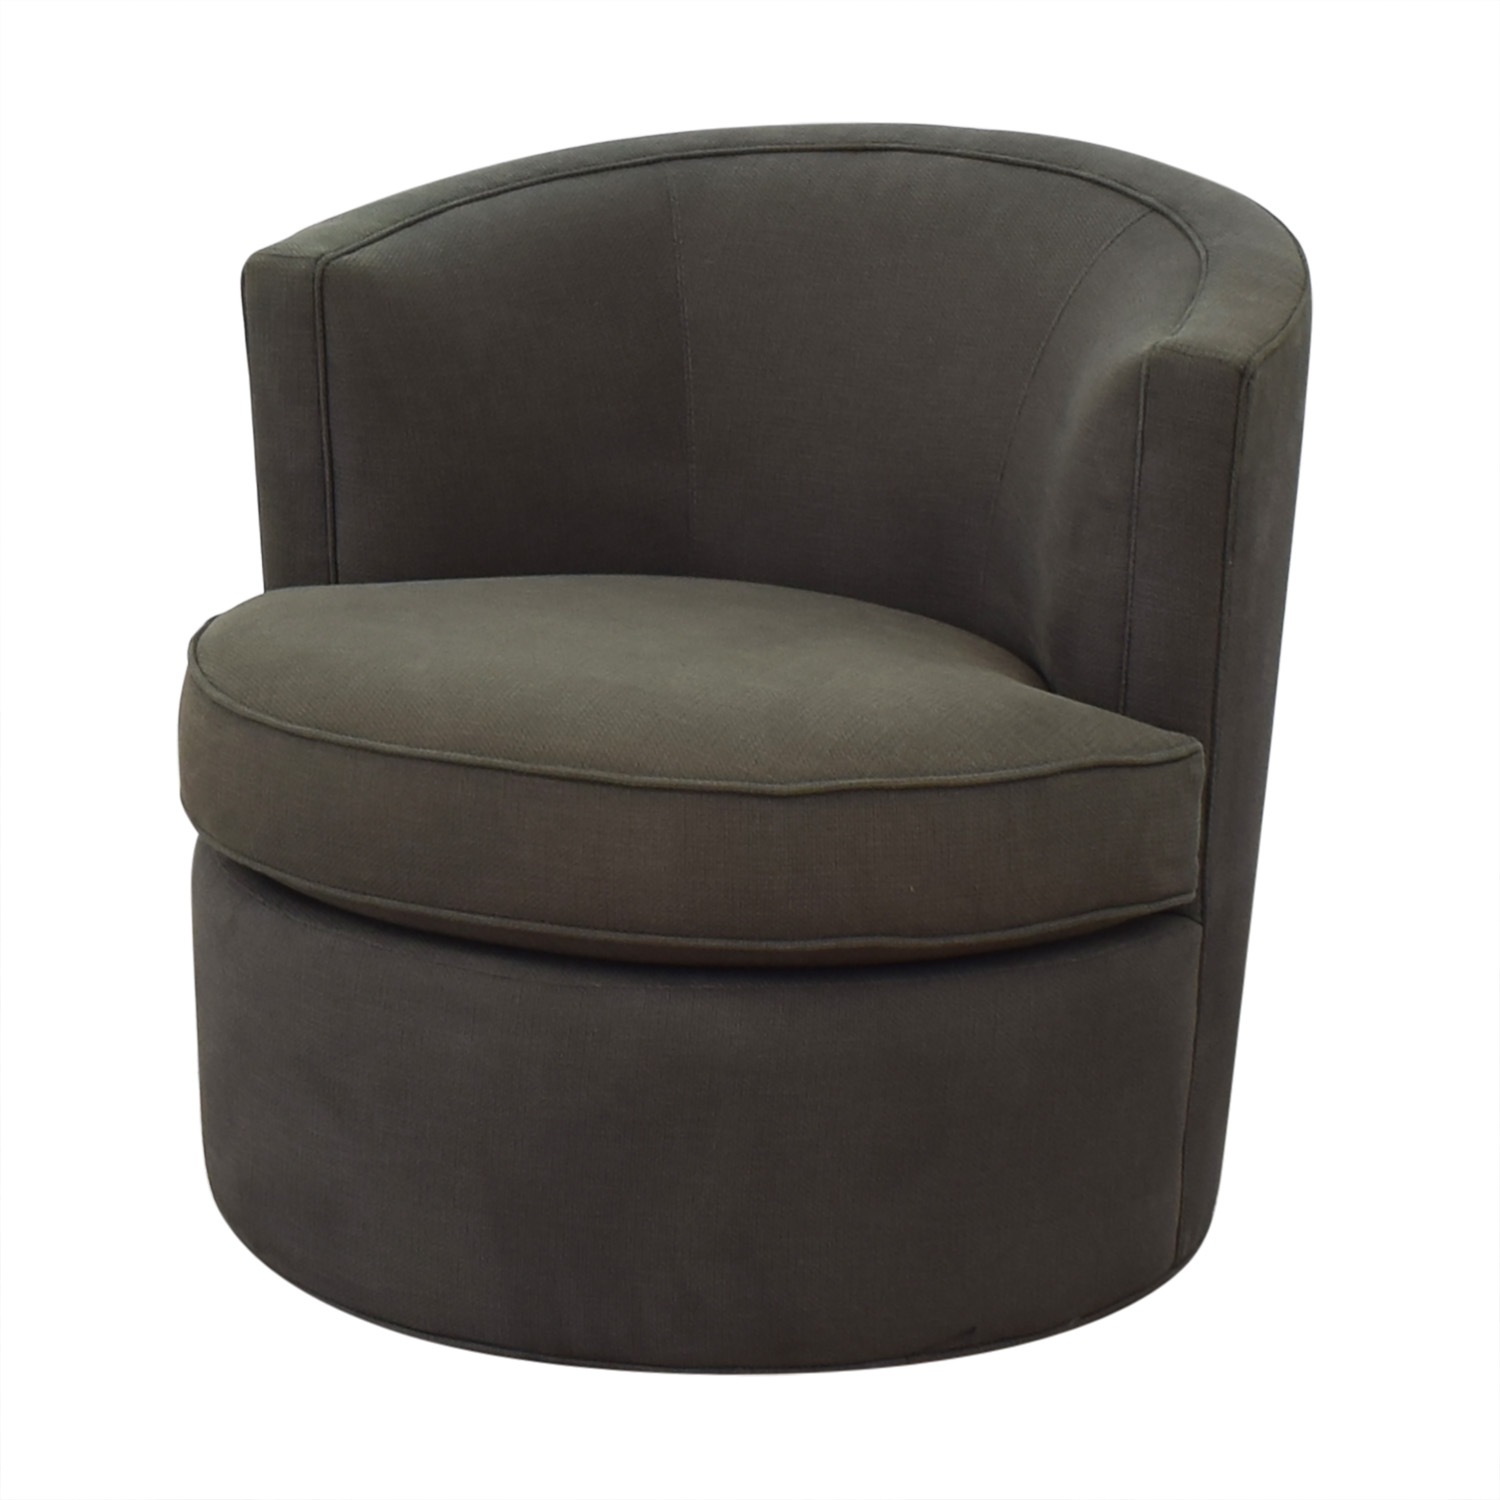 Room & Board Room & Board Otis Swivel Chair dark gray